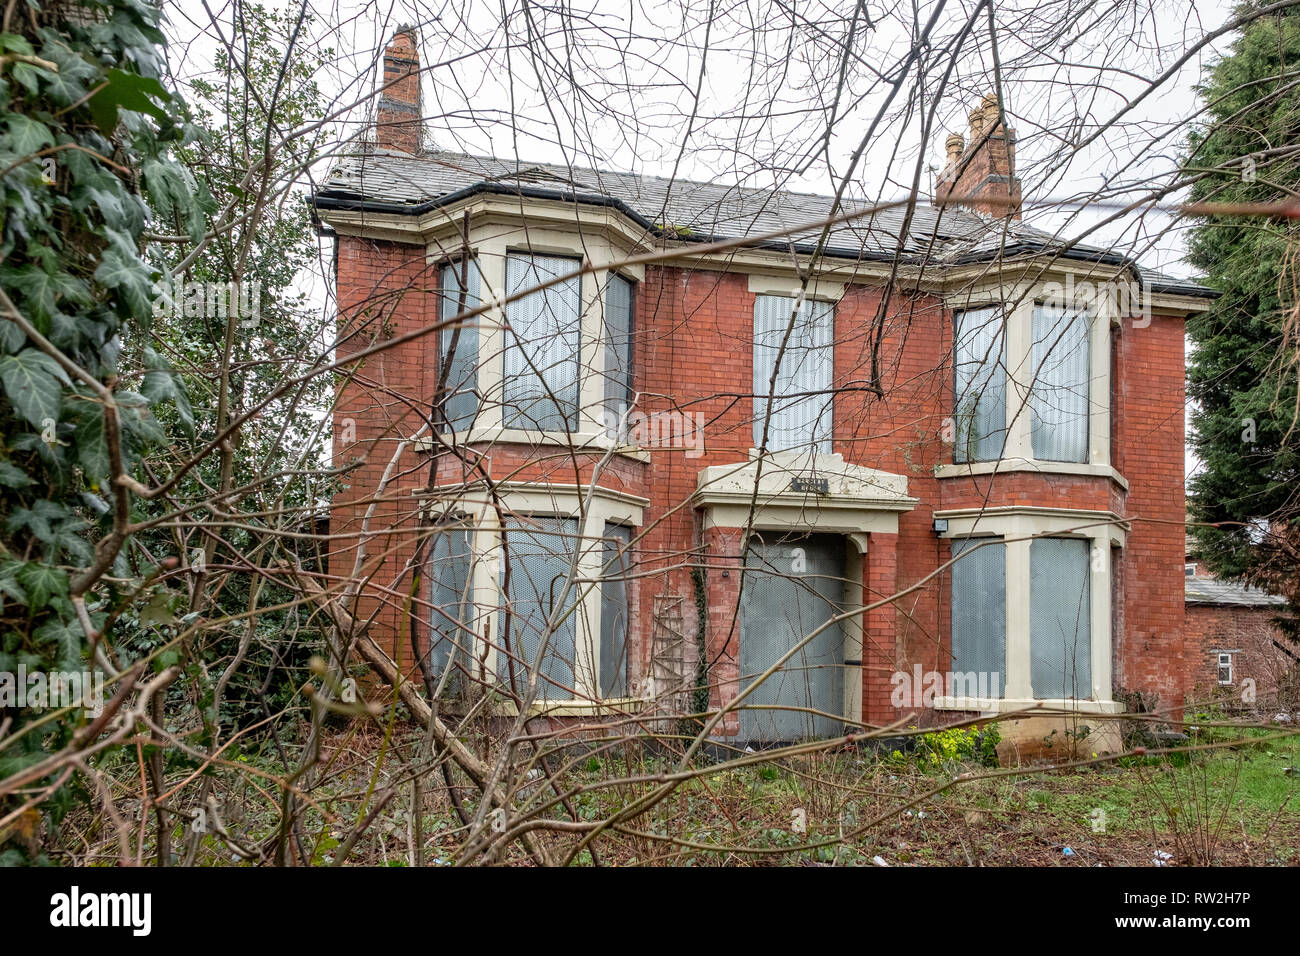 Derelict and boarded up Barclay House in Middlewich Cheshire UK - Stock Image